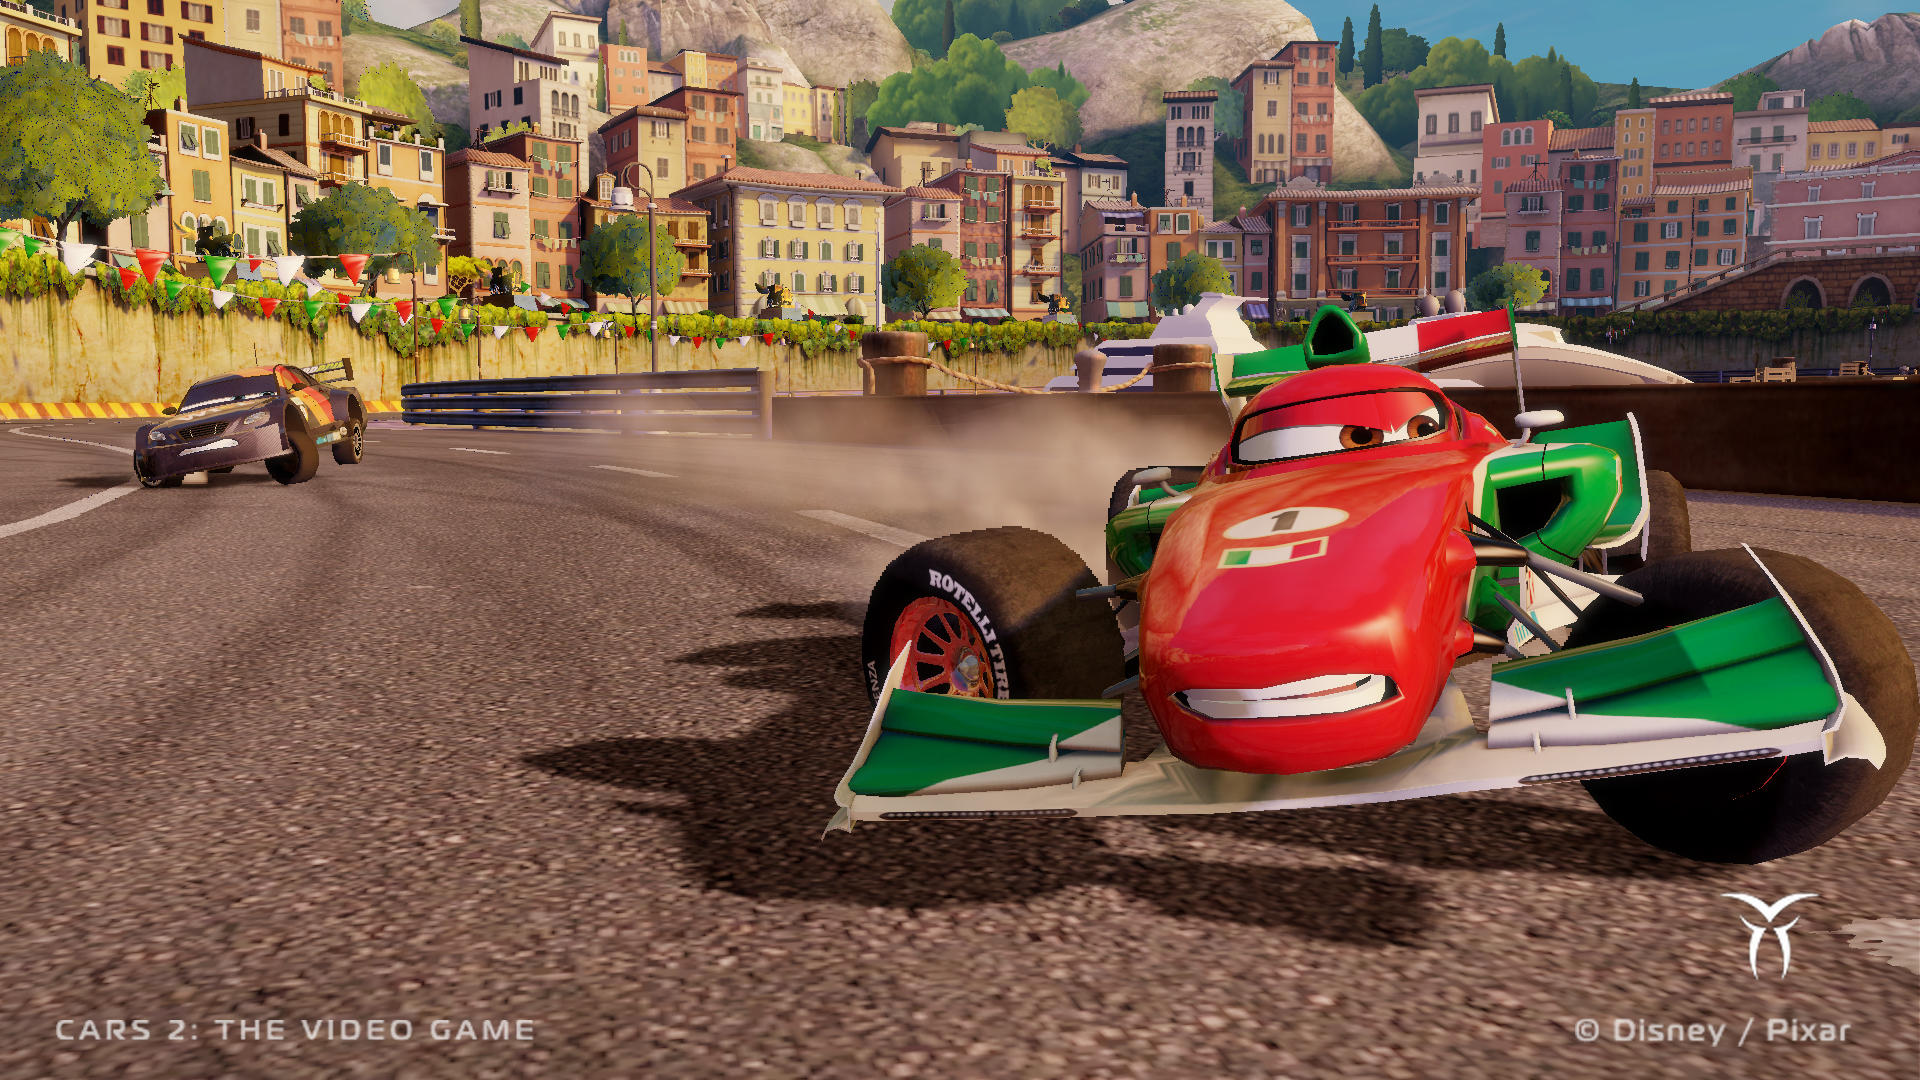 Cars 2 Video : disney pixar cars 2 the video game buy and download on gamersgate ~ Medecine-chirurgie-esthetiques.com Avis de Voitures